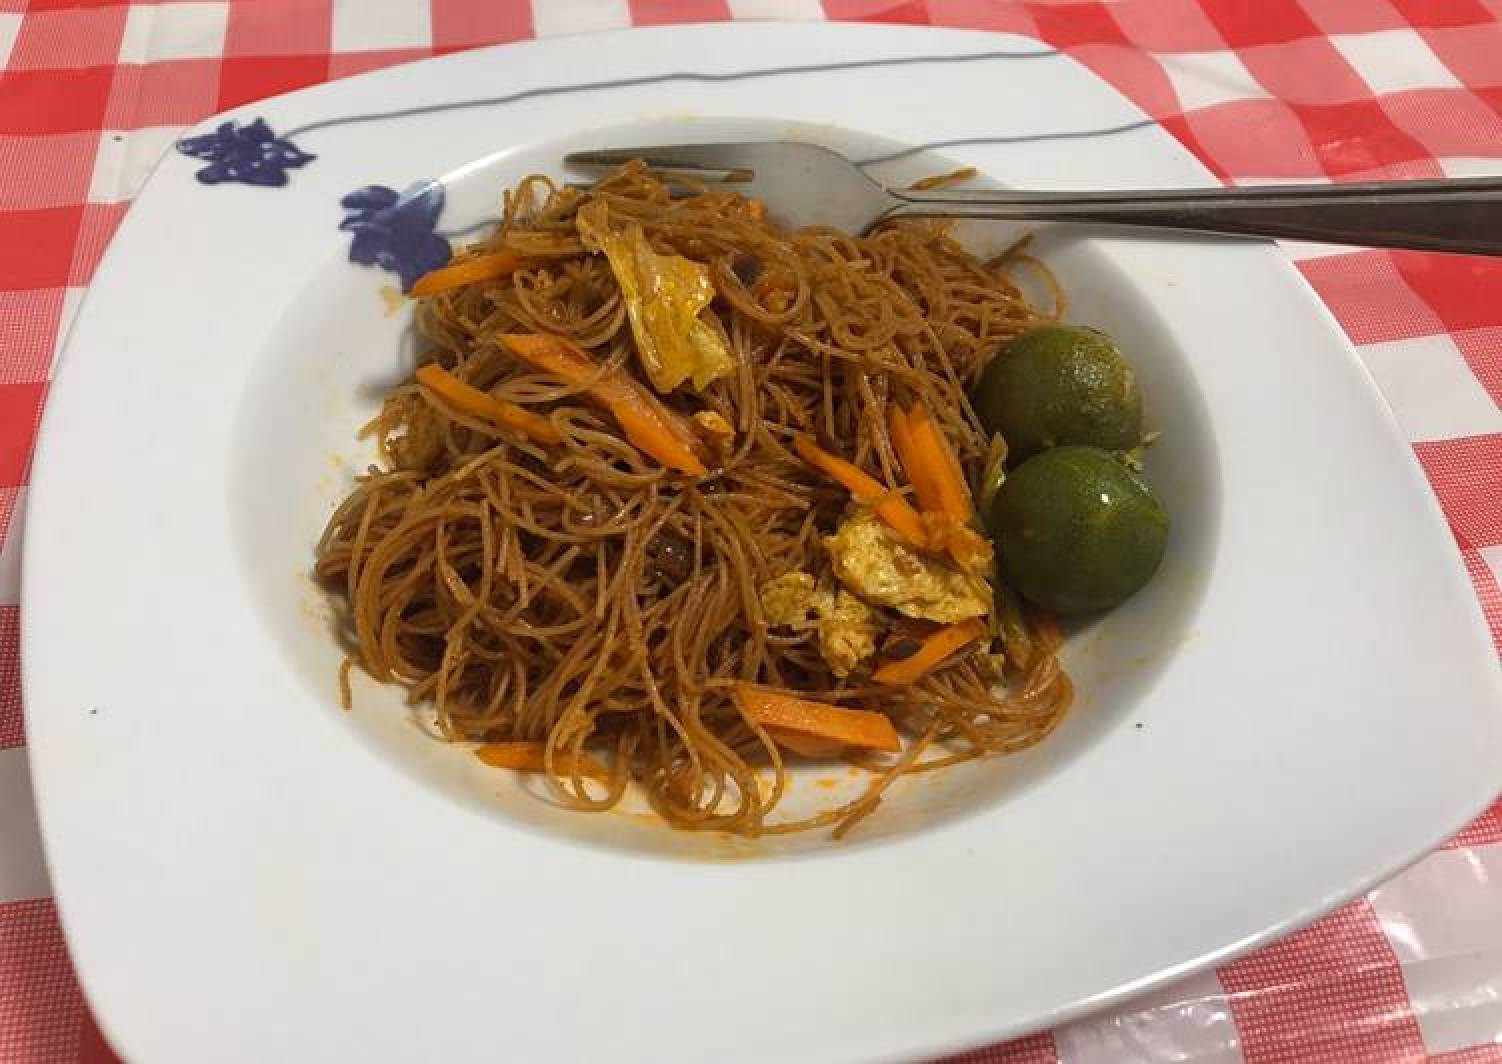 Stir fried curry noodles with lime (Bee Hoon Goreng)